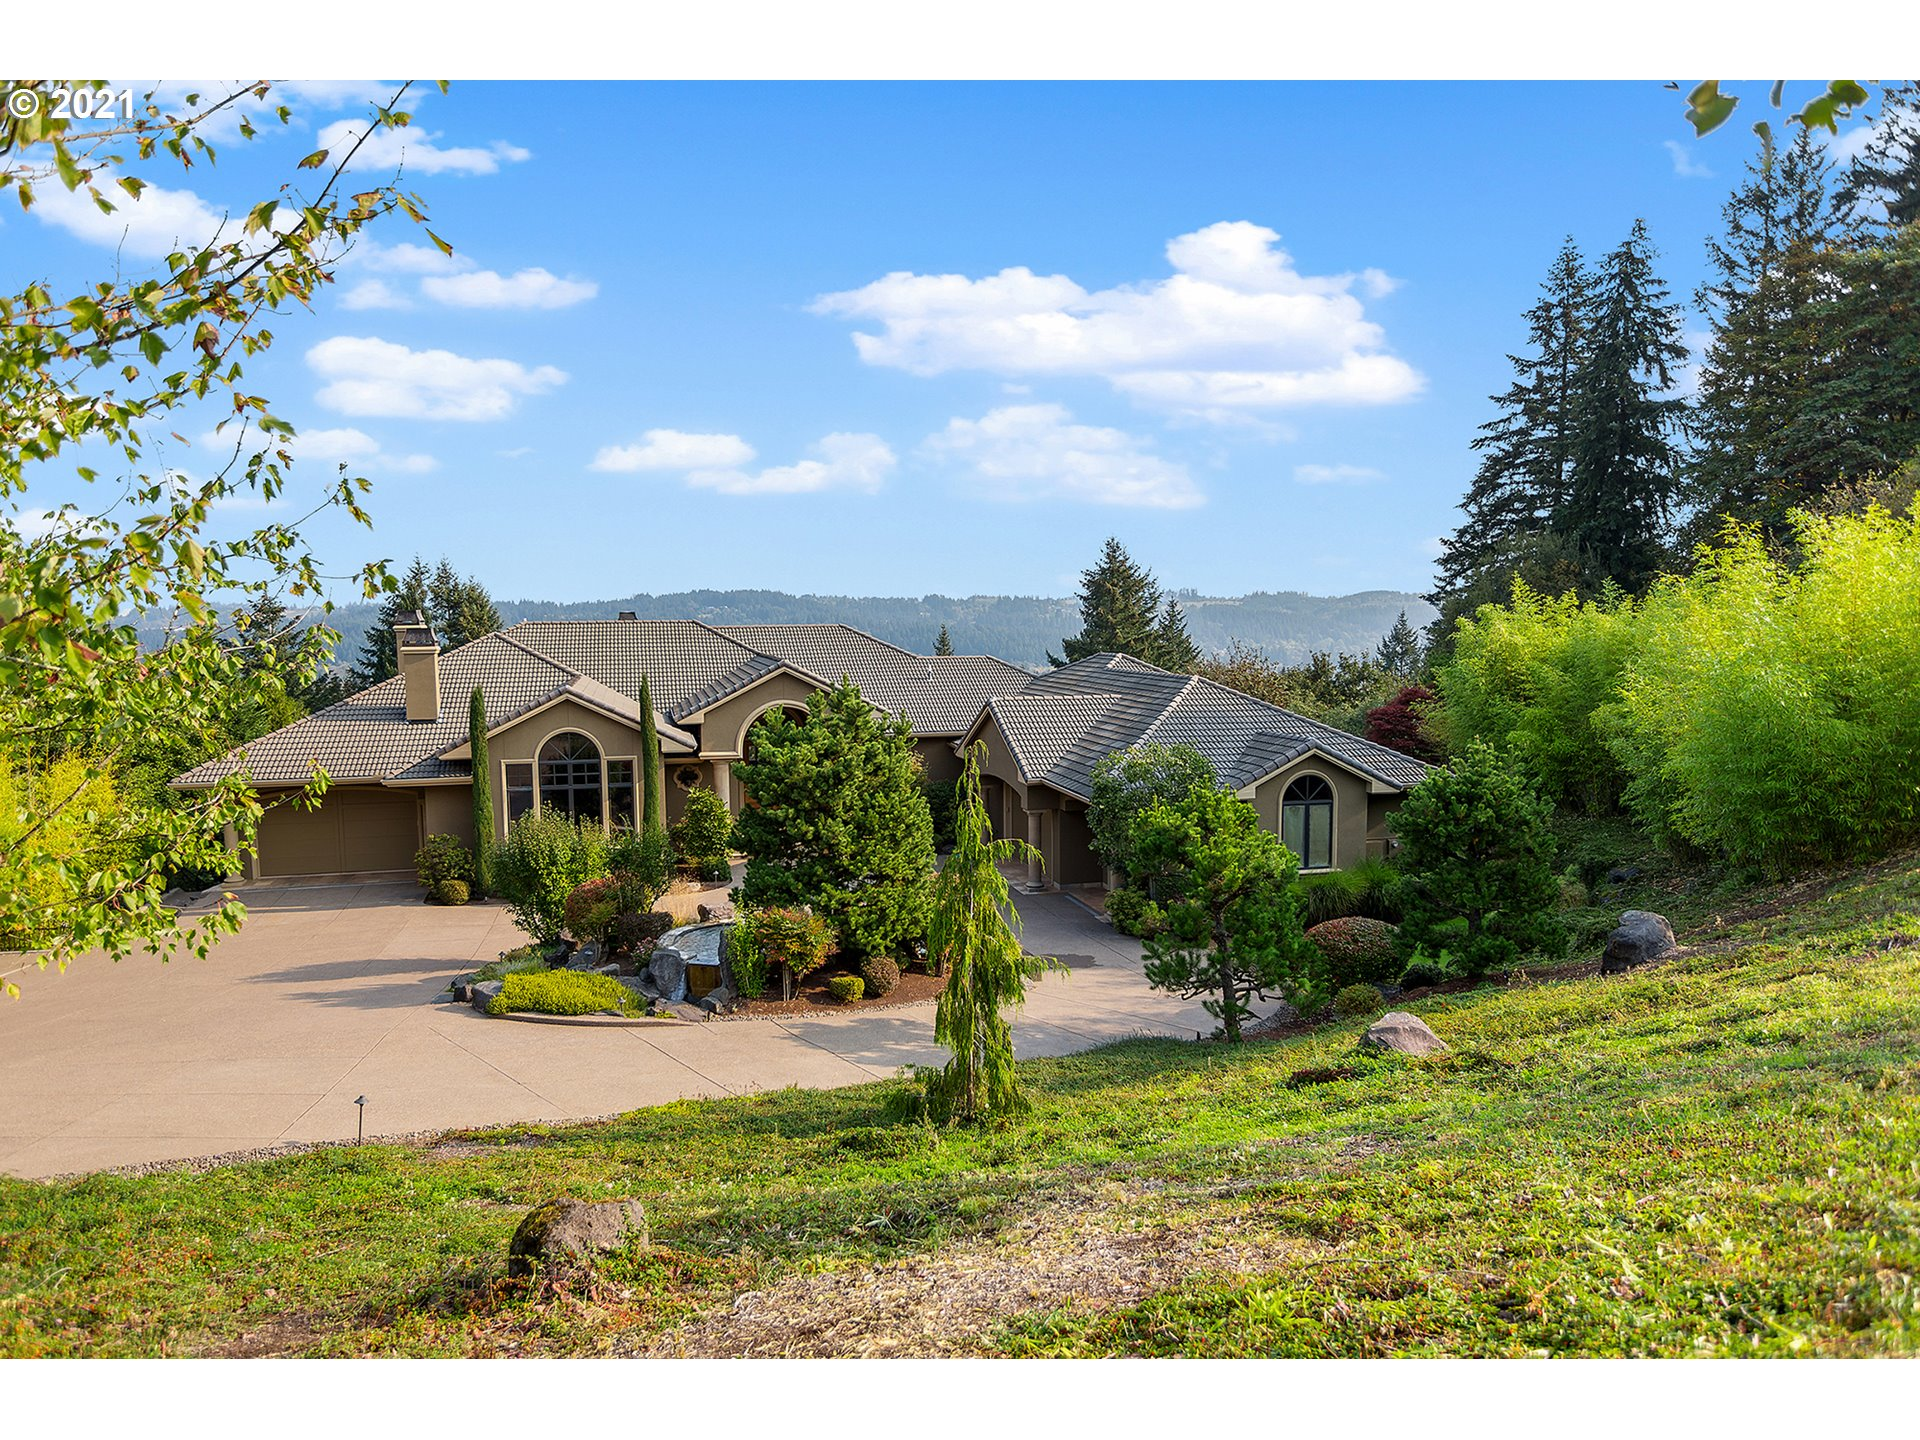 Wake to showstopping Mt. Hood views from 2 large & luxurious master suites on the main floor of this gated estate within the gated Stafford Hills Ranch. Modern, open floorplan great for living & entertaining in & out year-round on 2 levels of decks & 5 acres. Run your empire from the impressive 560 sq.ft. executive's office. Custom designed for an intl. fashion accessory designer & once home to former Trailblazer. Make this your escape.